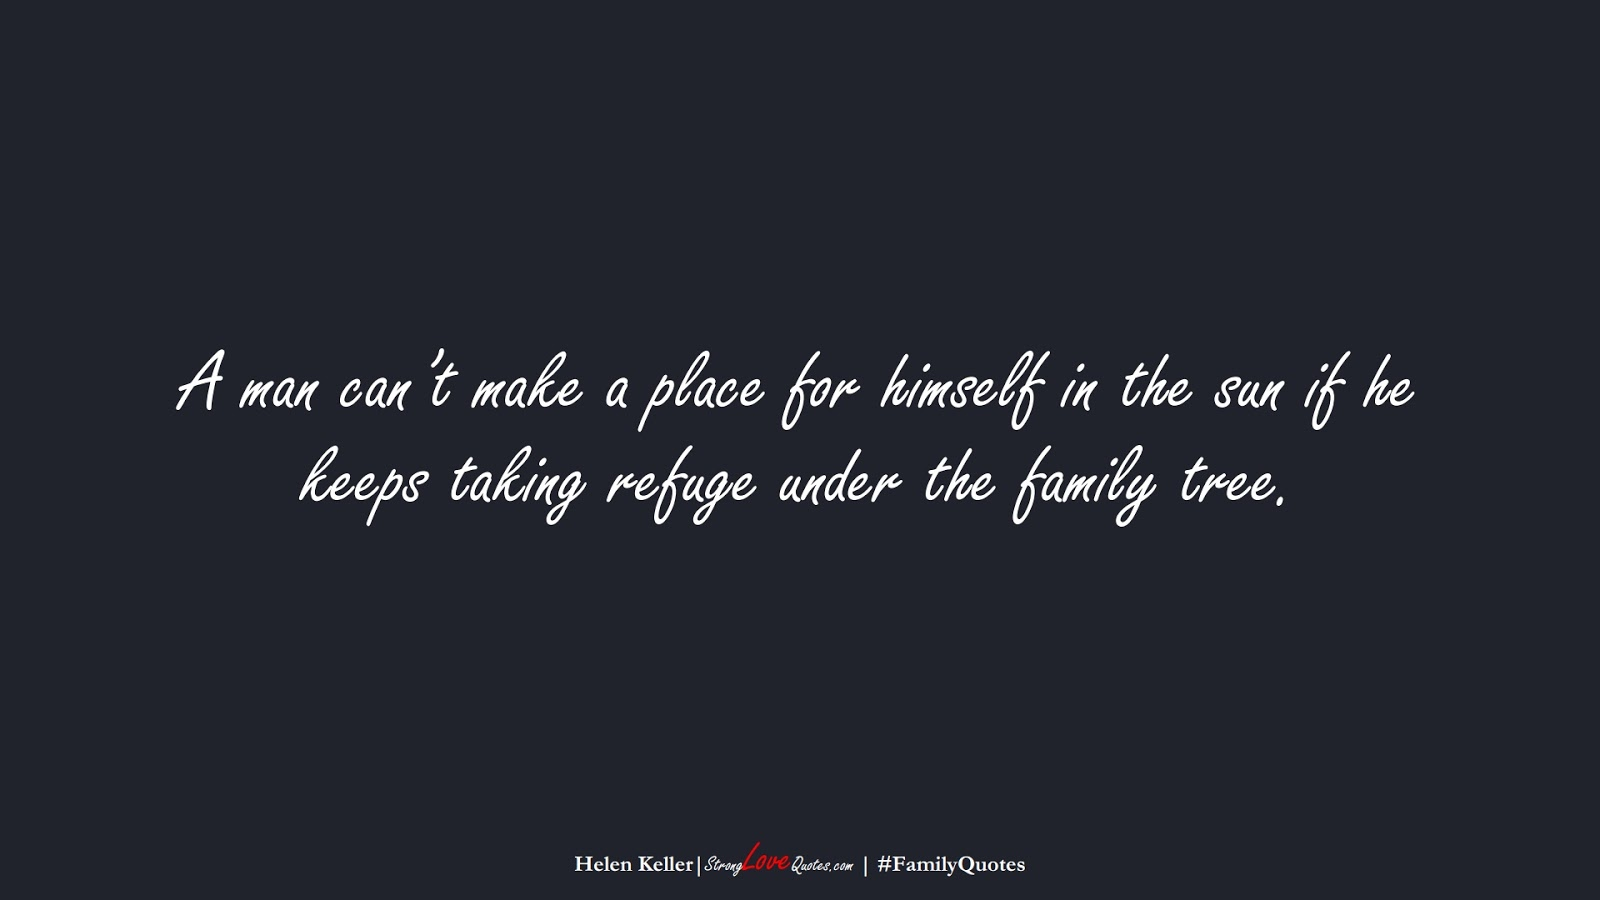 A man can't make a place for himself in the sun if he keeps taking refuge under the family tree. (Helen Keller);  #FamilyQuotes